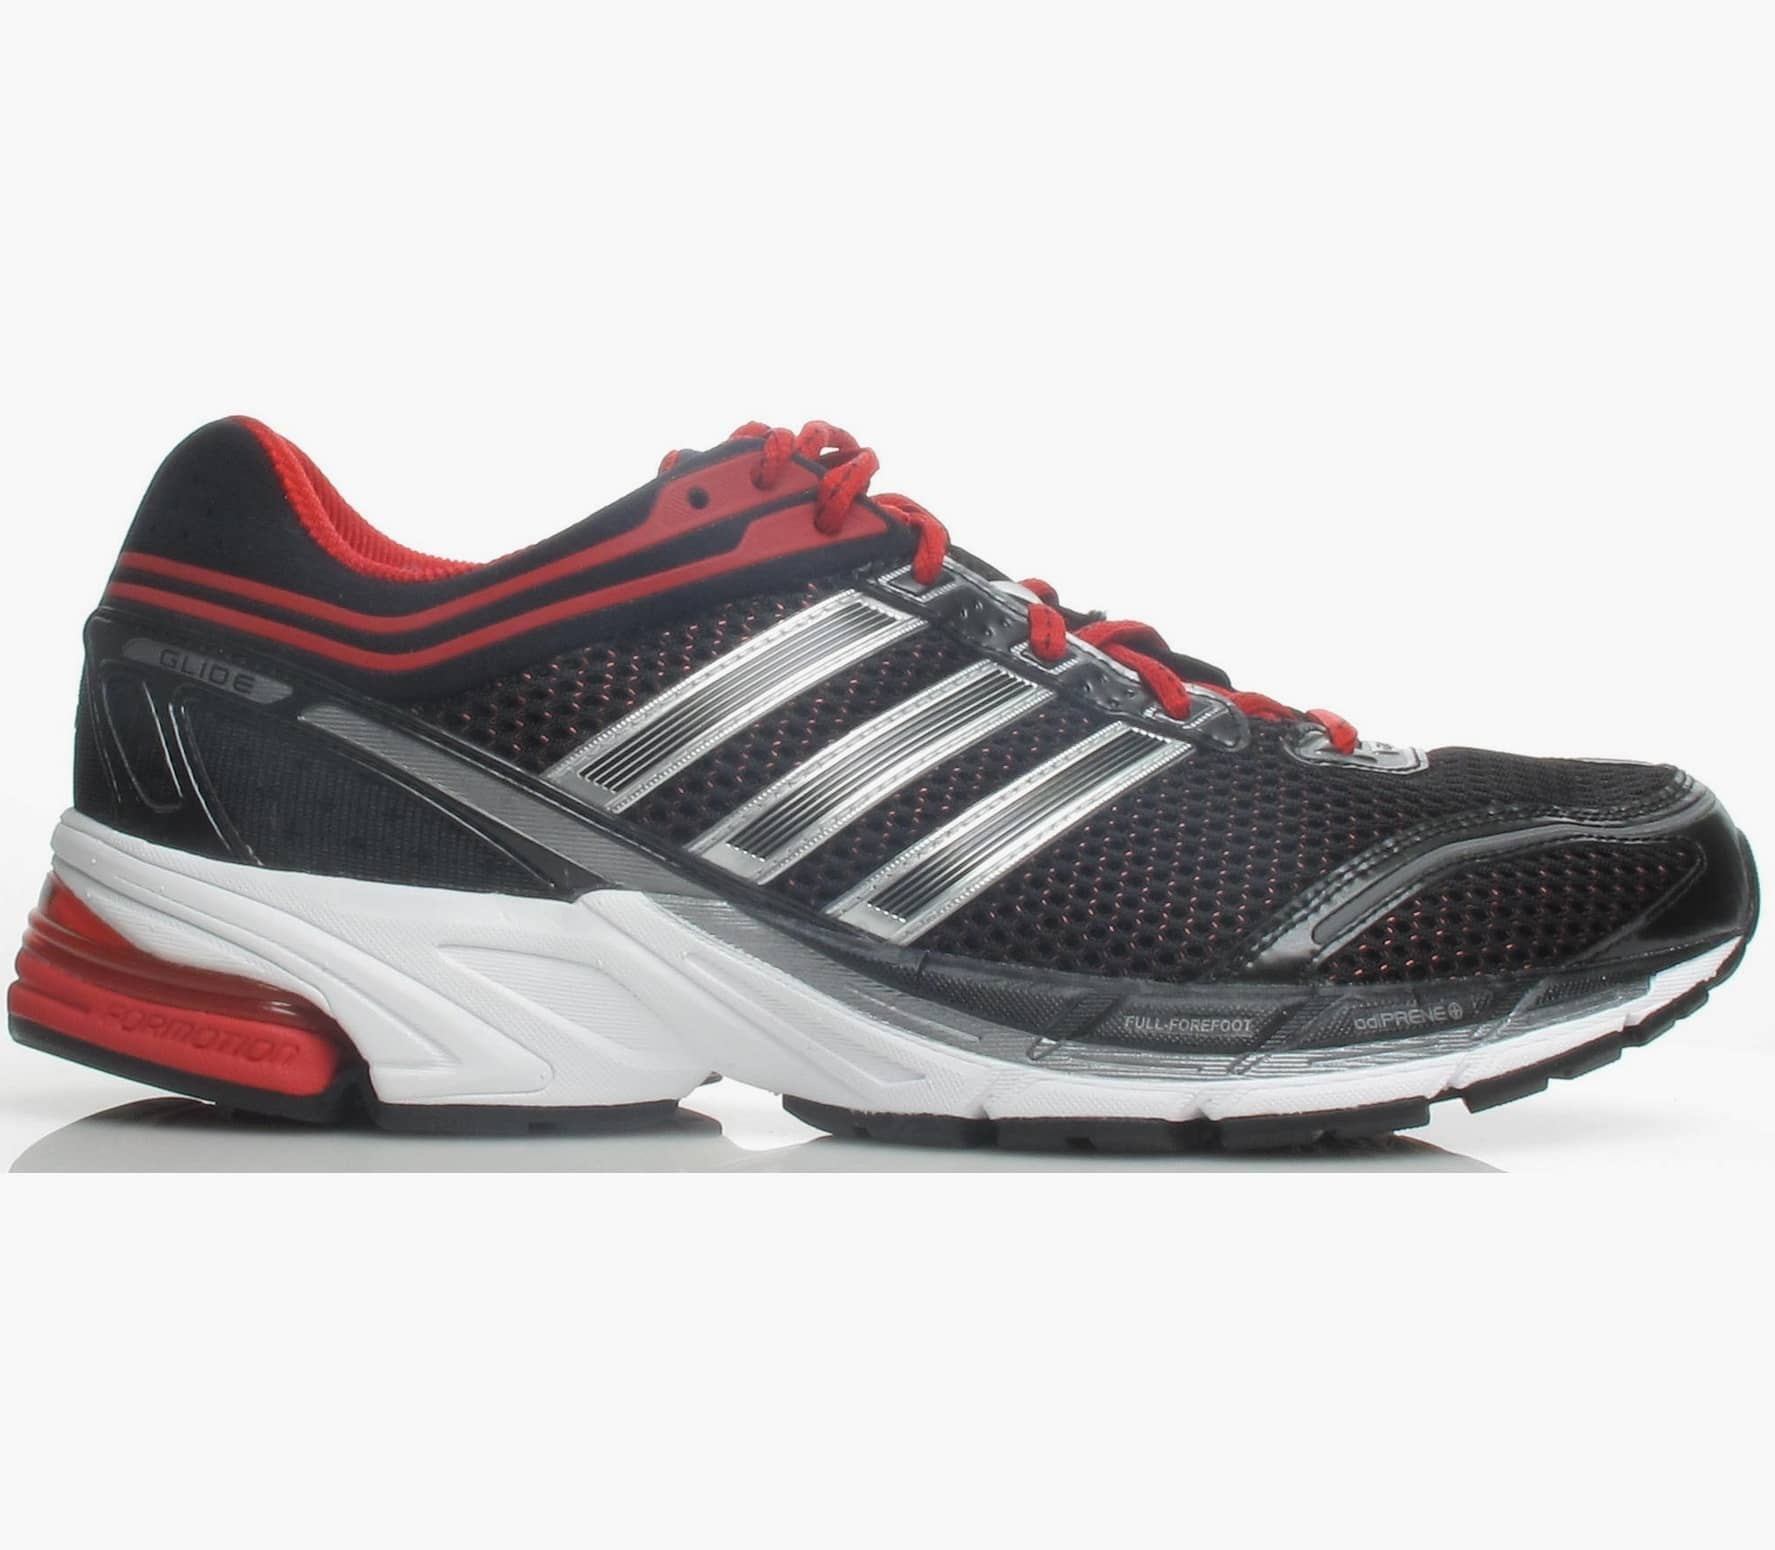 9732e8779 Adidas Running Shoe SuperNova Glide 3 M - buy it at the Keller Sports  online shop